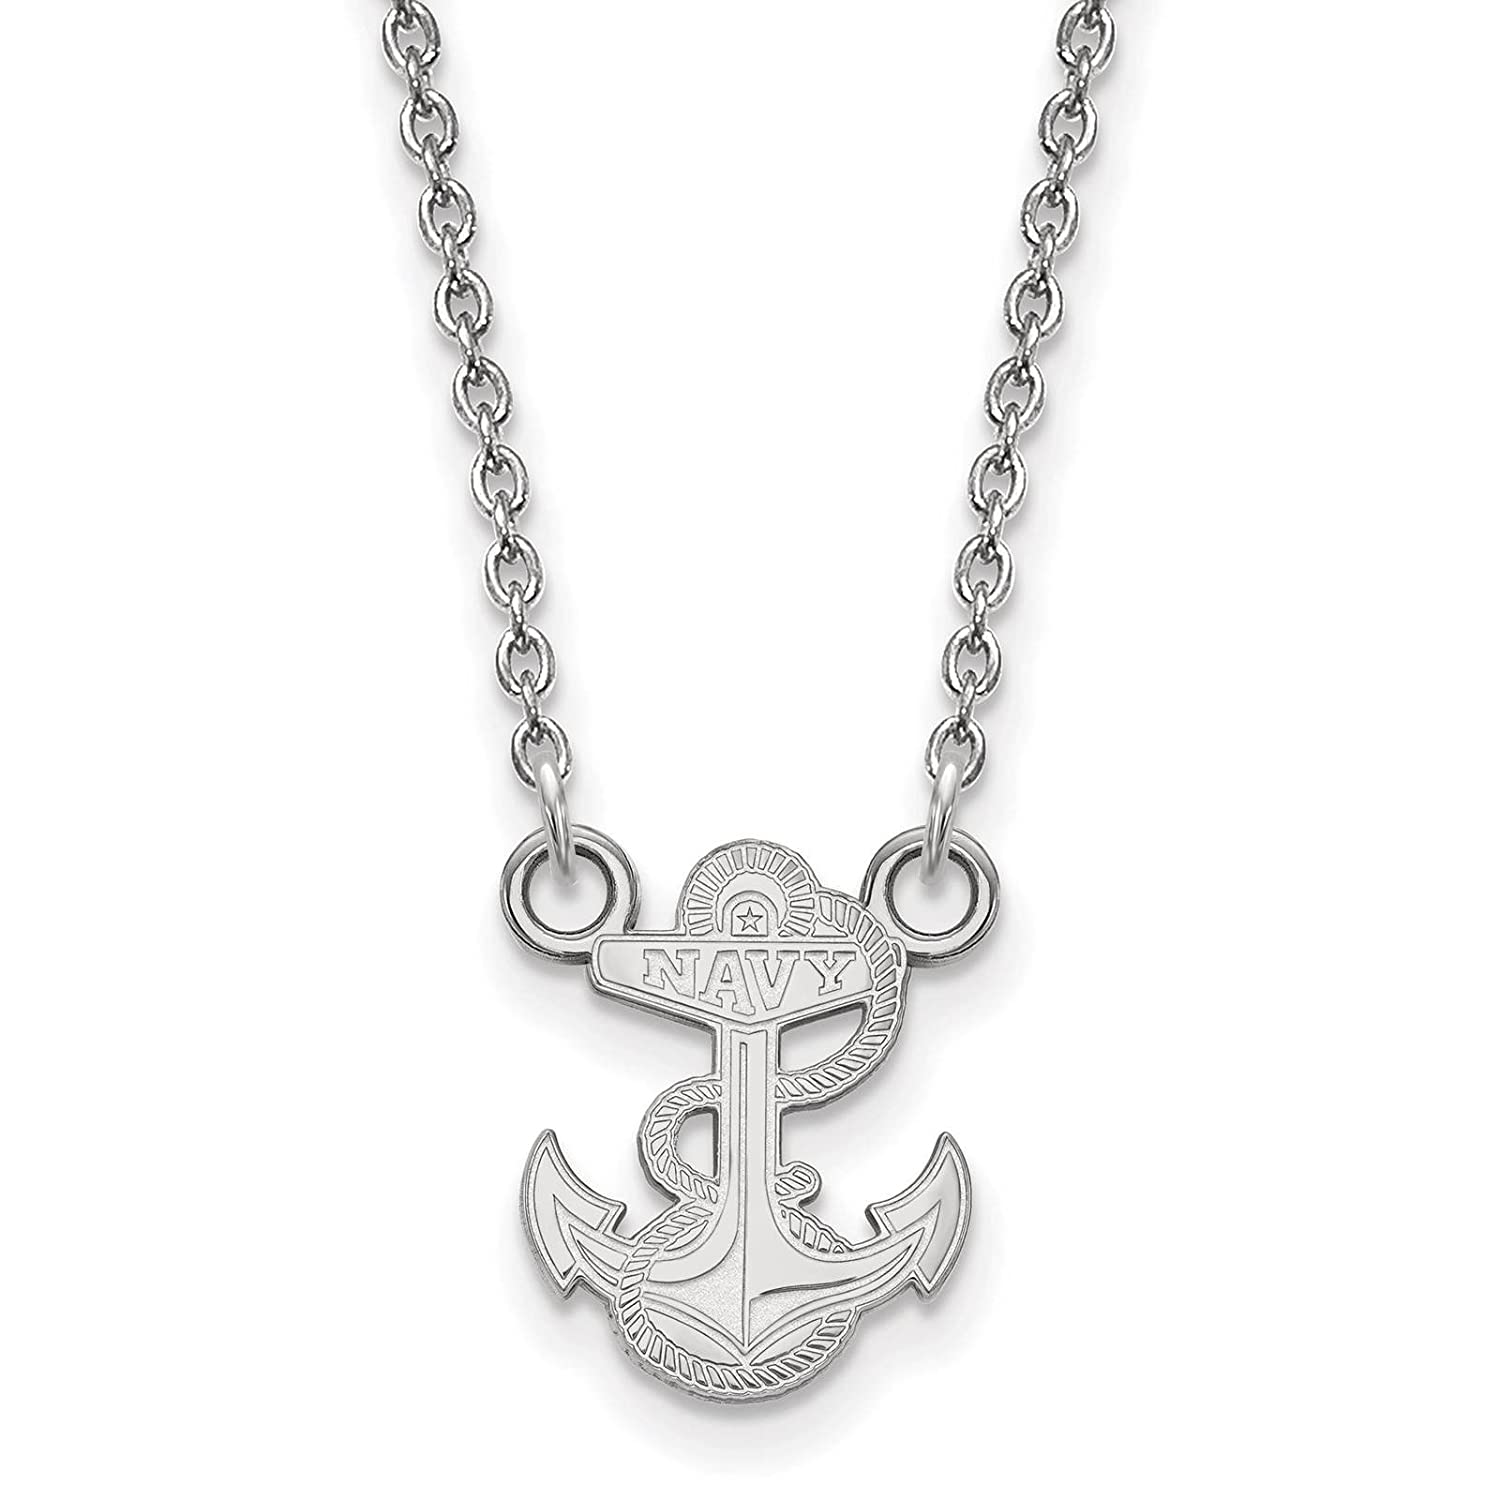 925 Sterling Silver Rhodium-plated Laser-cut United States Naval Academy Small Pendant w//Necklace 18